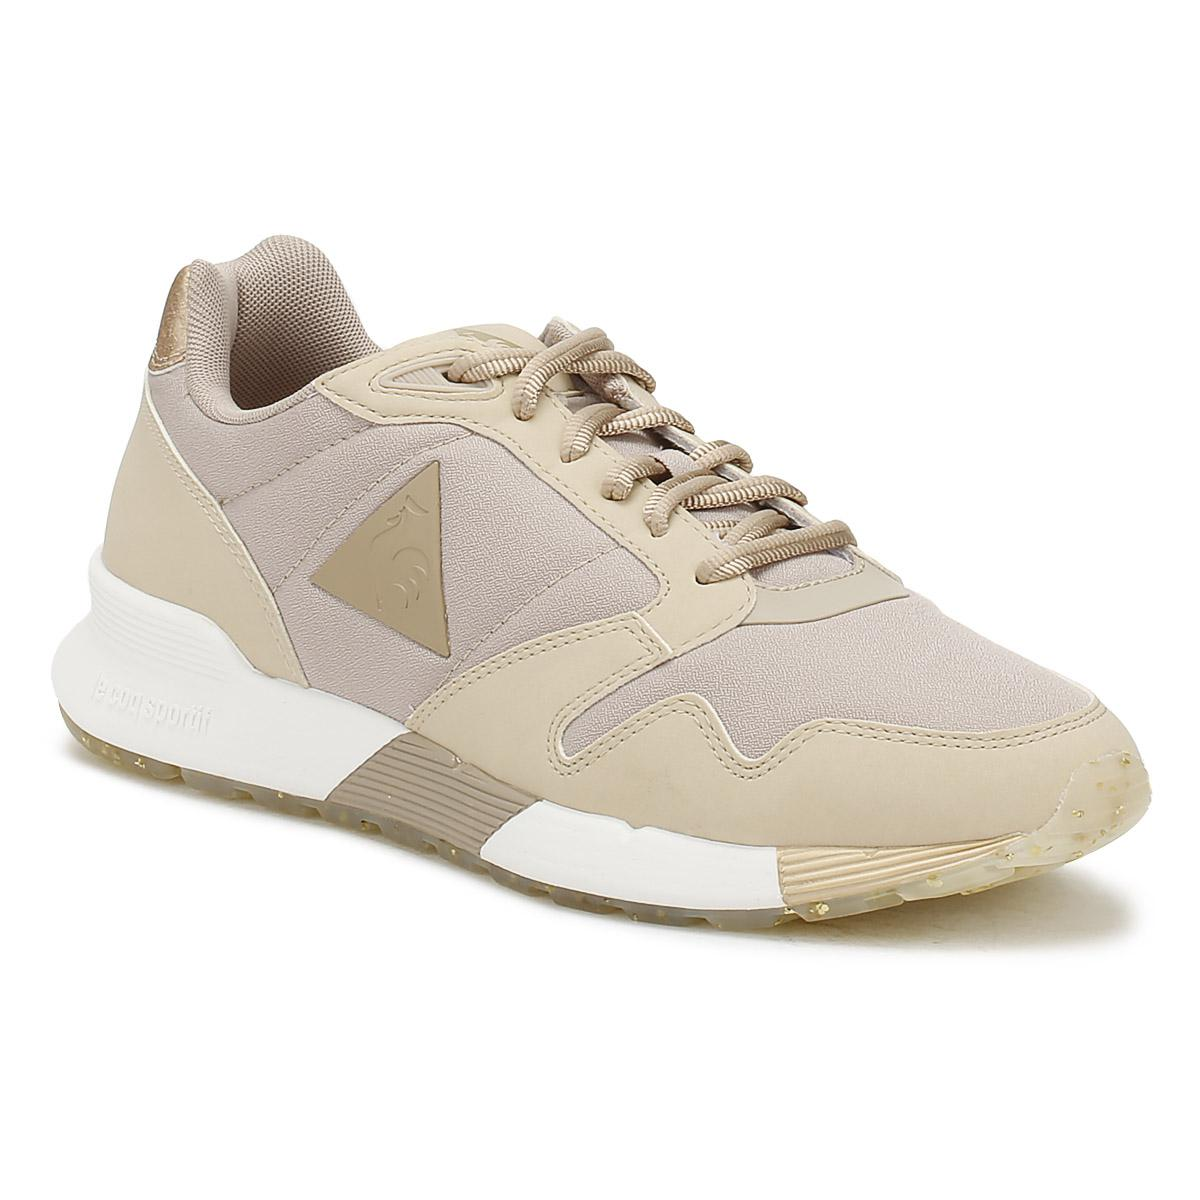 le coq sportif OMEGA X W METALLIC - Trainers - moonlight r6EnG36